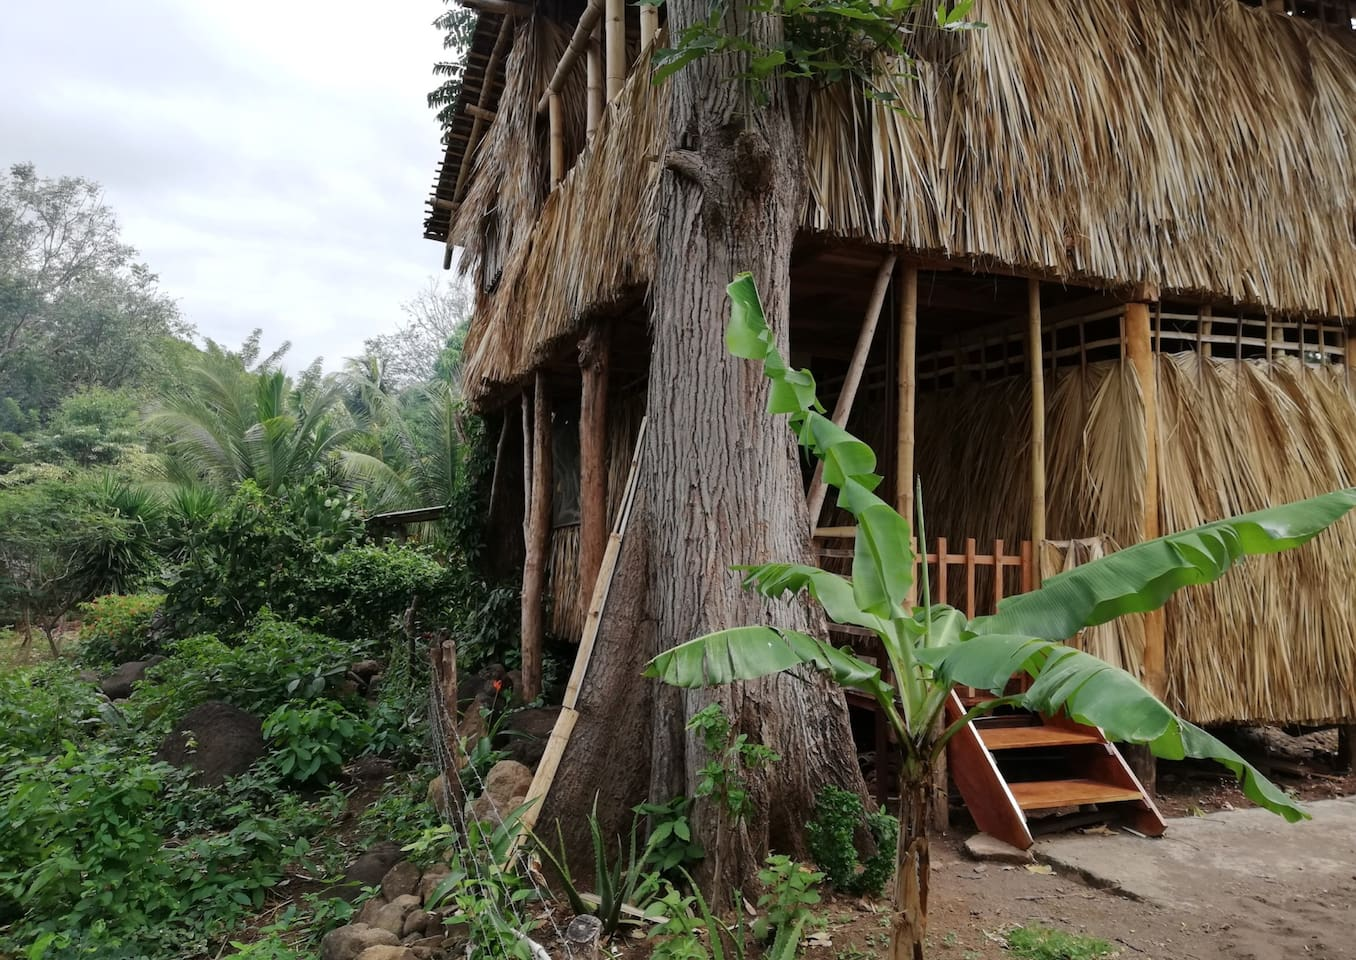 Enjoy the local Nicaraguan neighborhood by sleeping at unique Bamboo cabin. El Bamboo located on Balgue, Ometepe island.